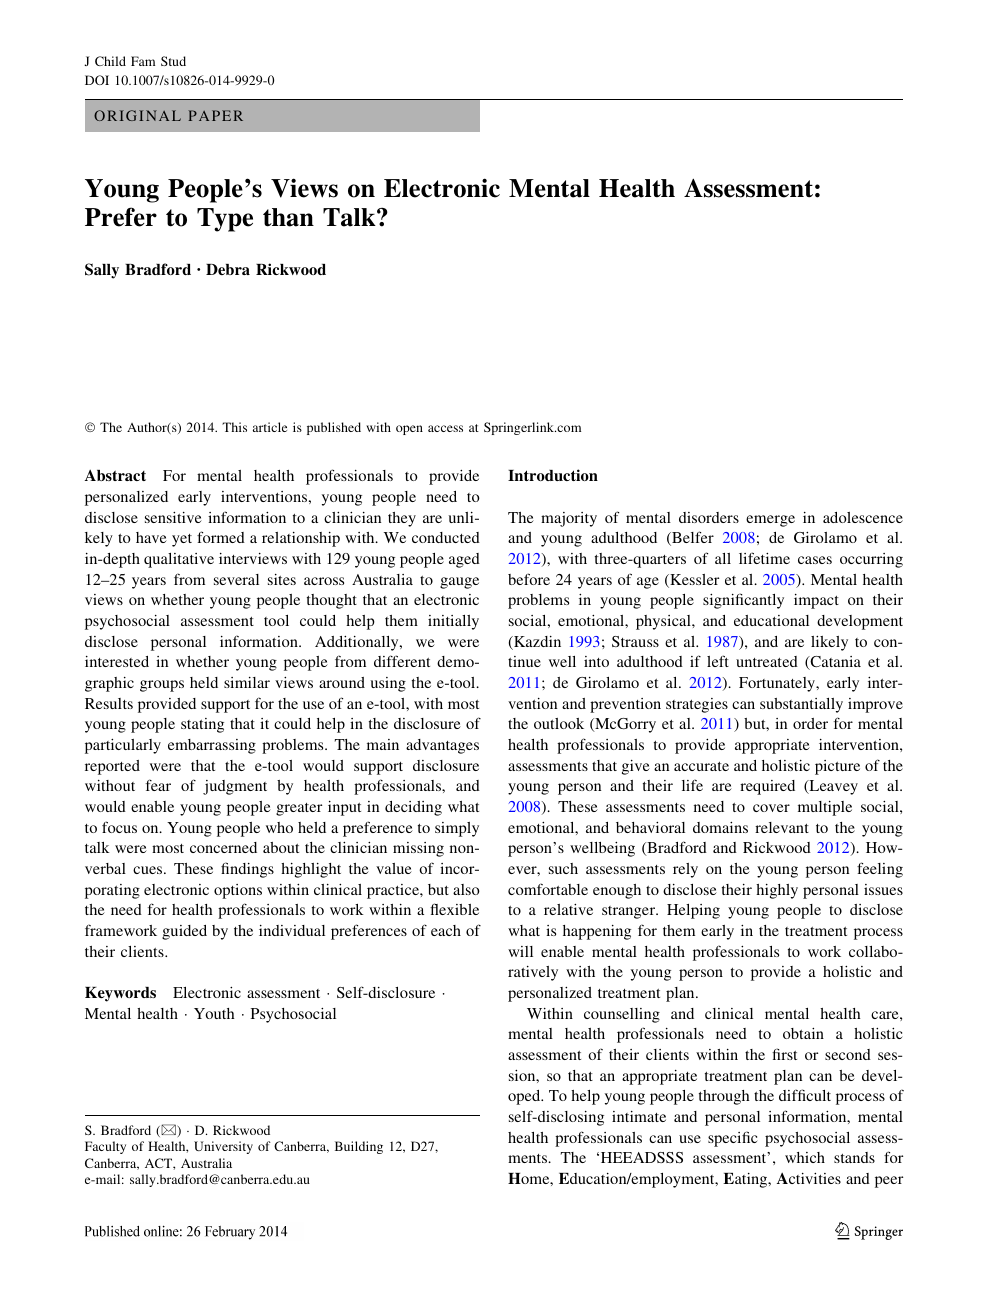 Young People S Views On Electronic Mental Health Assessment Prefer To Type Than Talk Topic Of Research Paper In Psychology Download Scholarly Article Pdf And Read For Free On Cyberleninka Open Science